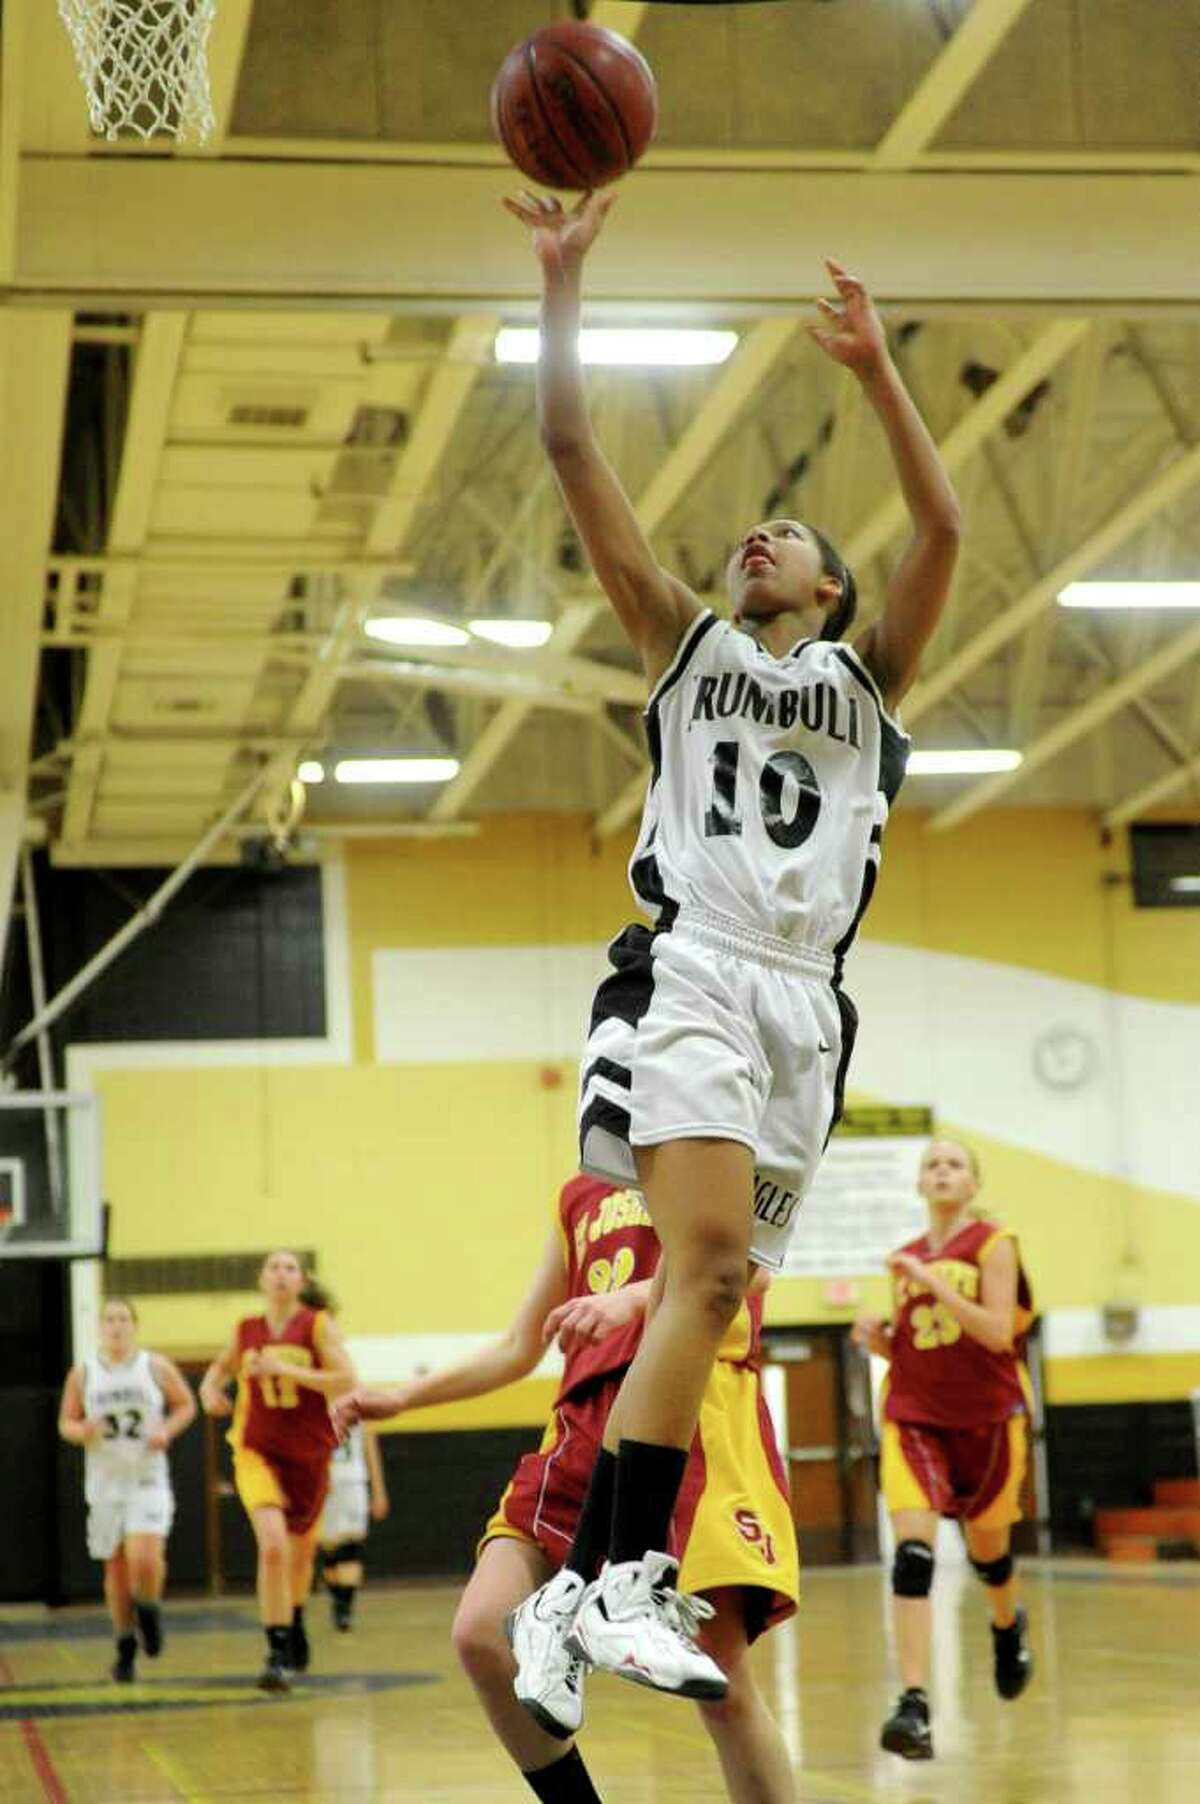 Trumbull's Mookie Kennedy takes a shot against St. Joseph during Tuesday's game at Trumbull High School on January 25, 2011.